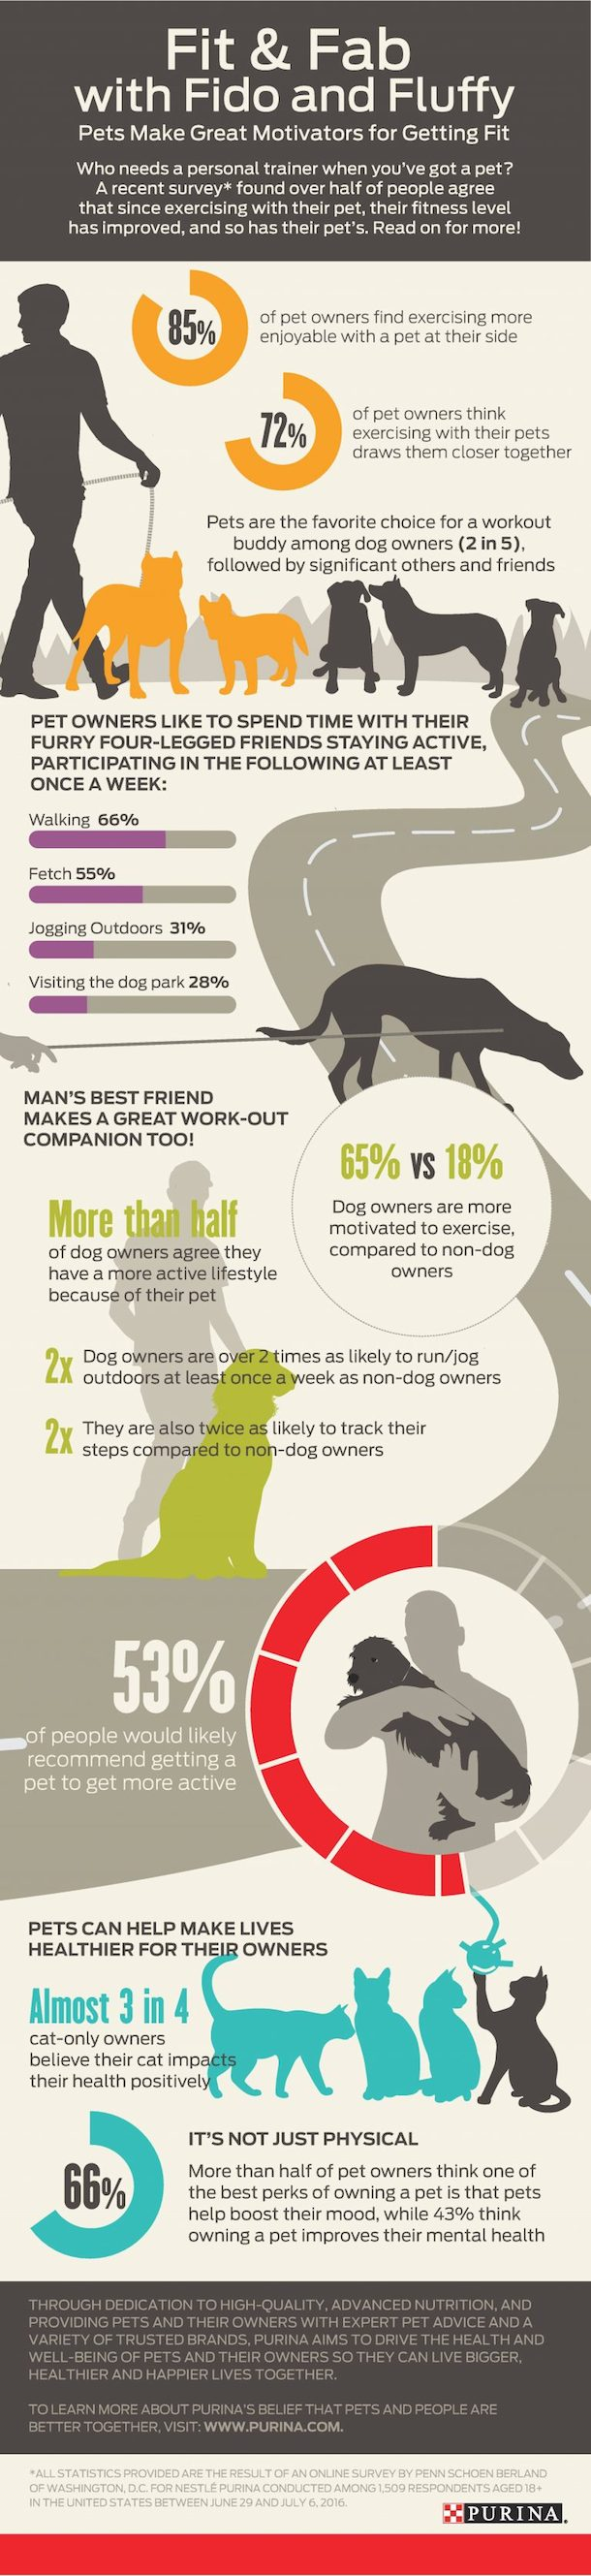 Infographic with facts on advantages of getting fit with your dog